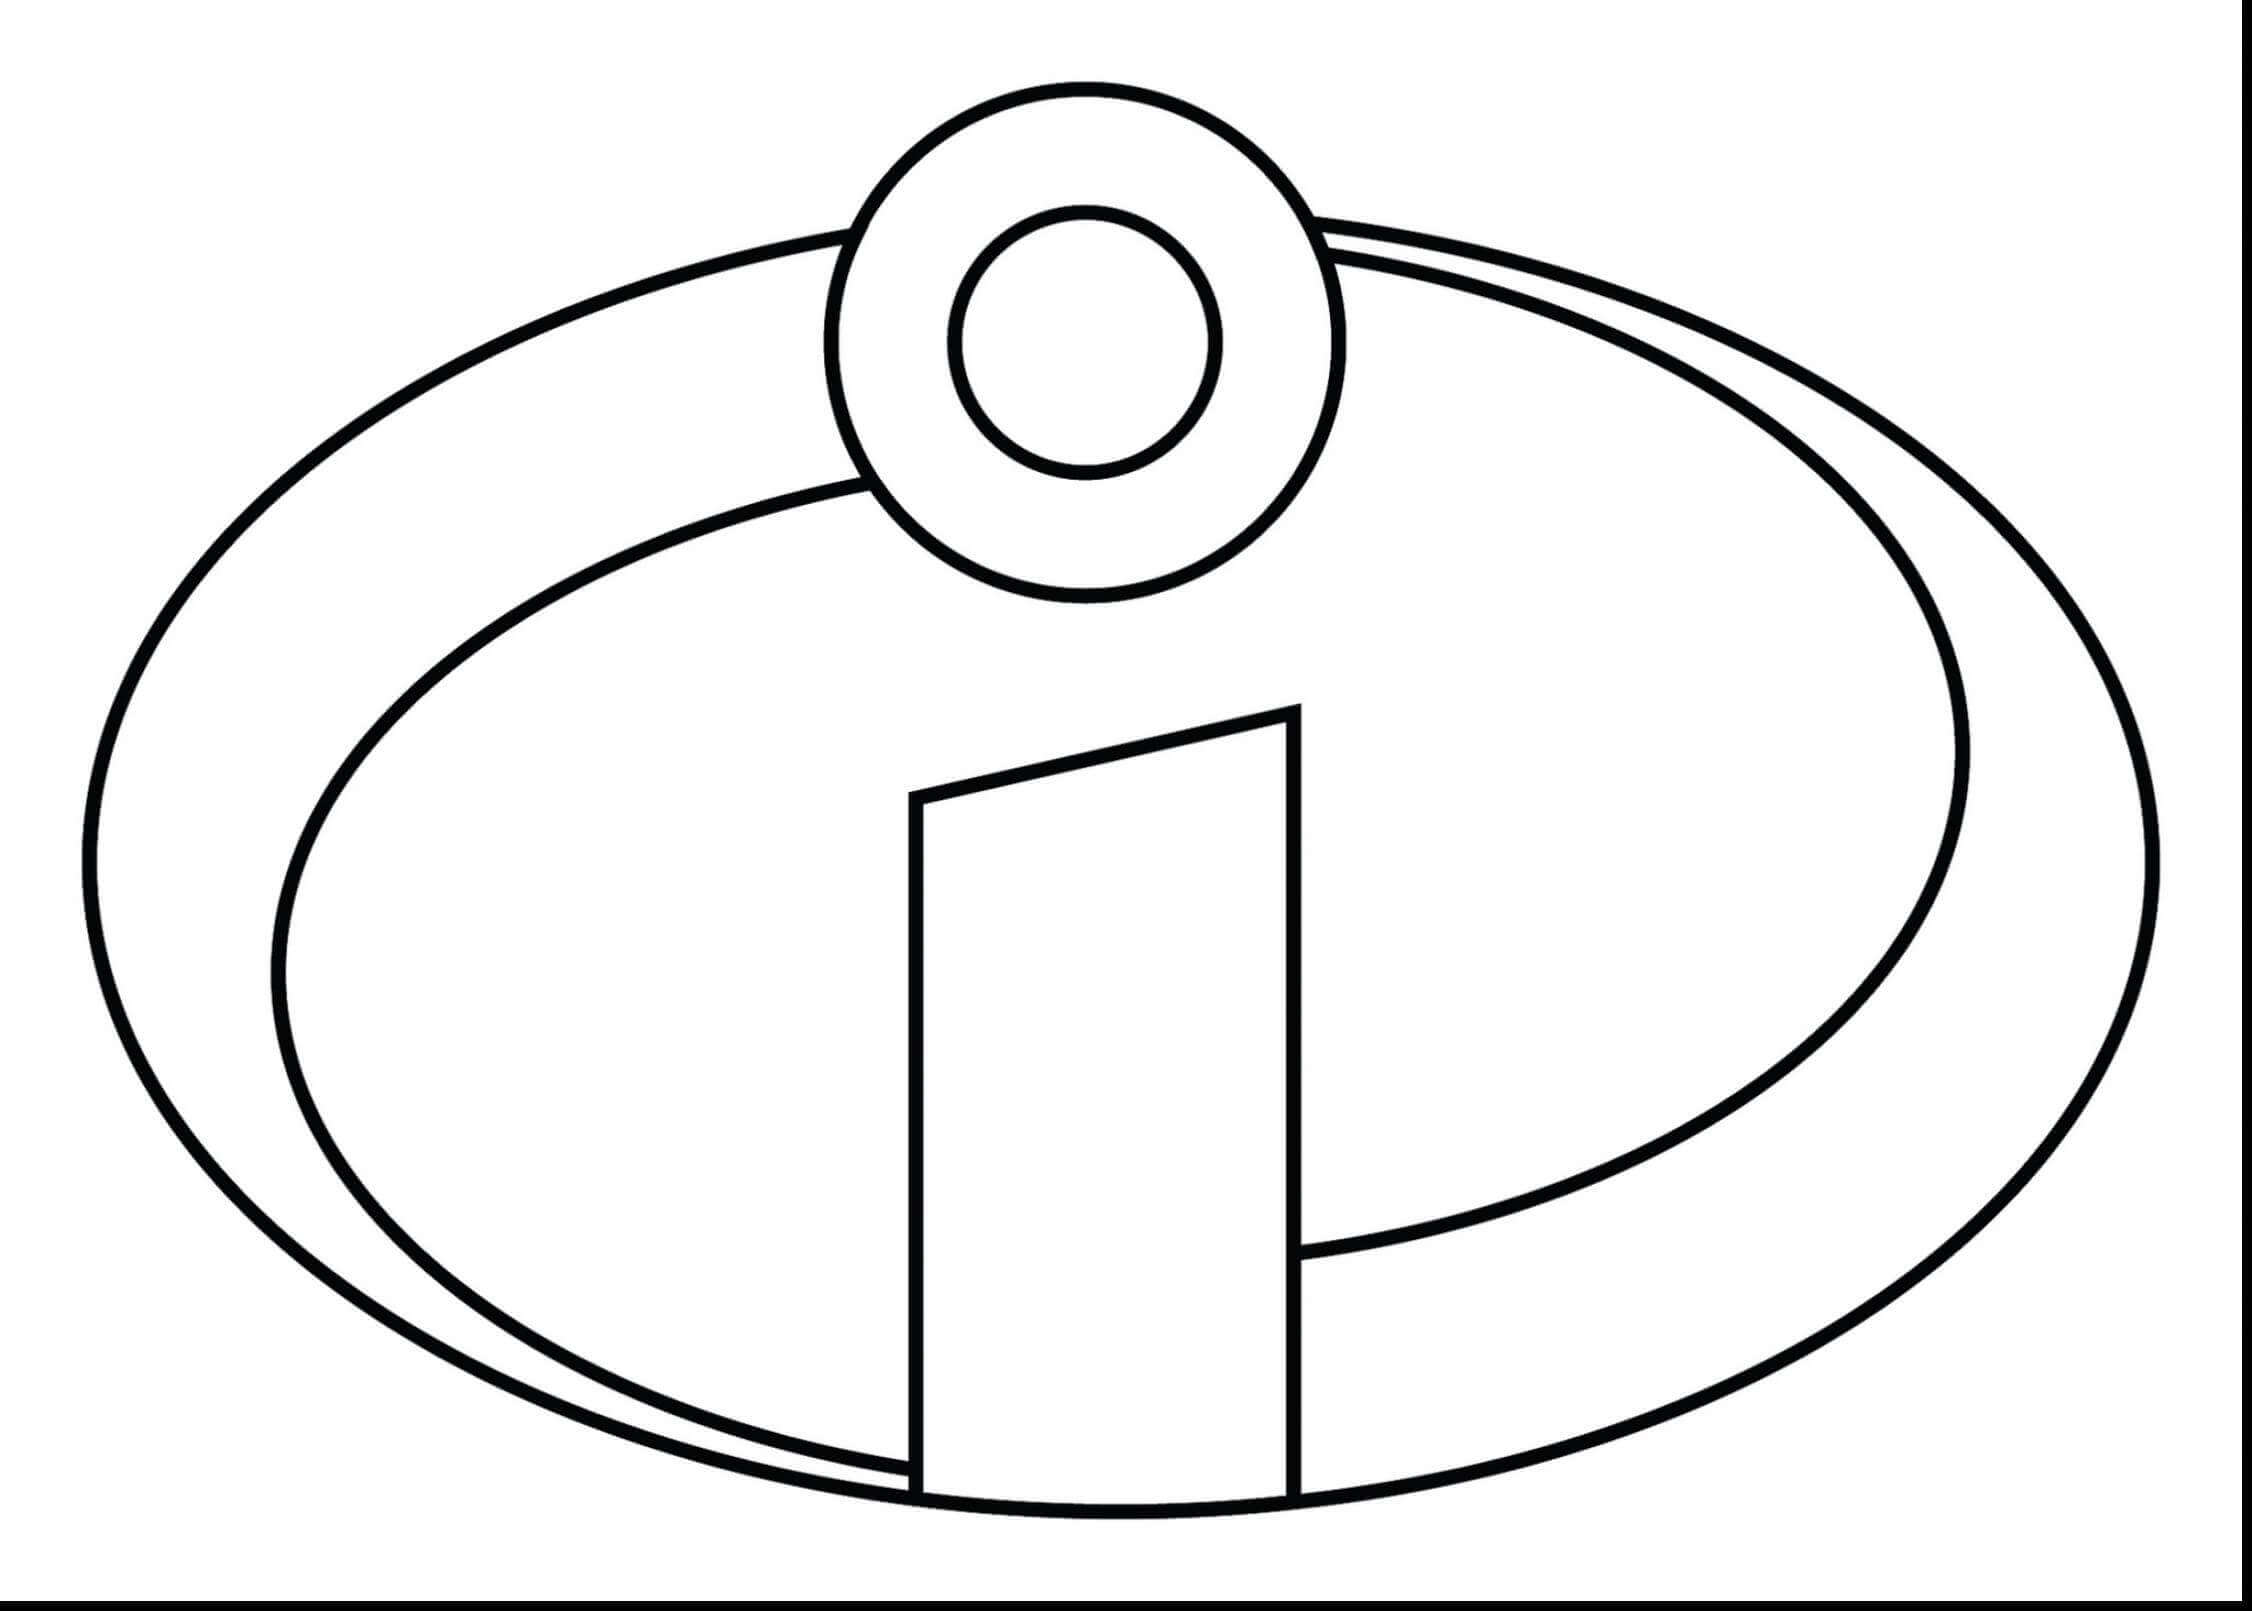 free incredibles 2 coloring pages incredibles coloring pages baby coloring pages coloring coloring free incredibles 2 pages